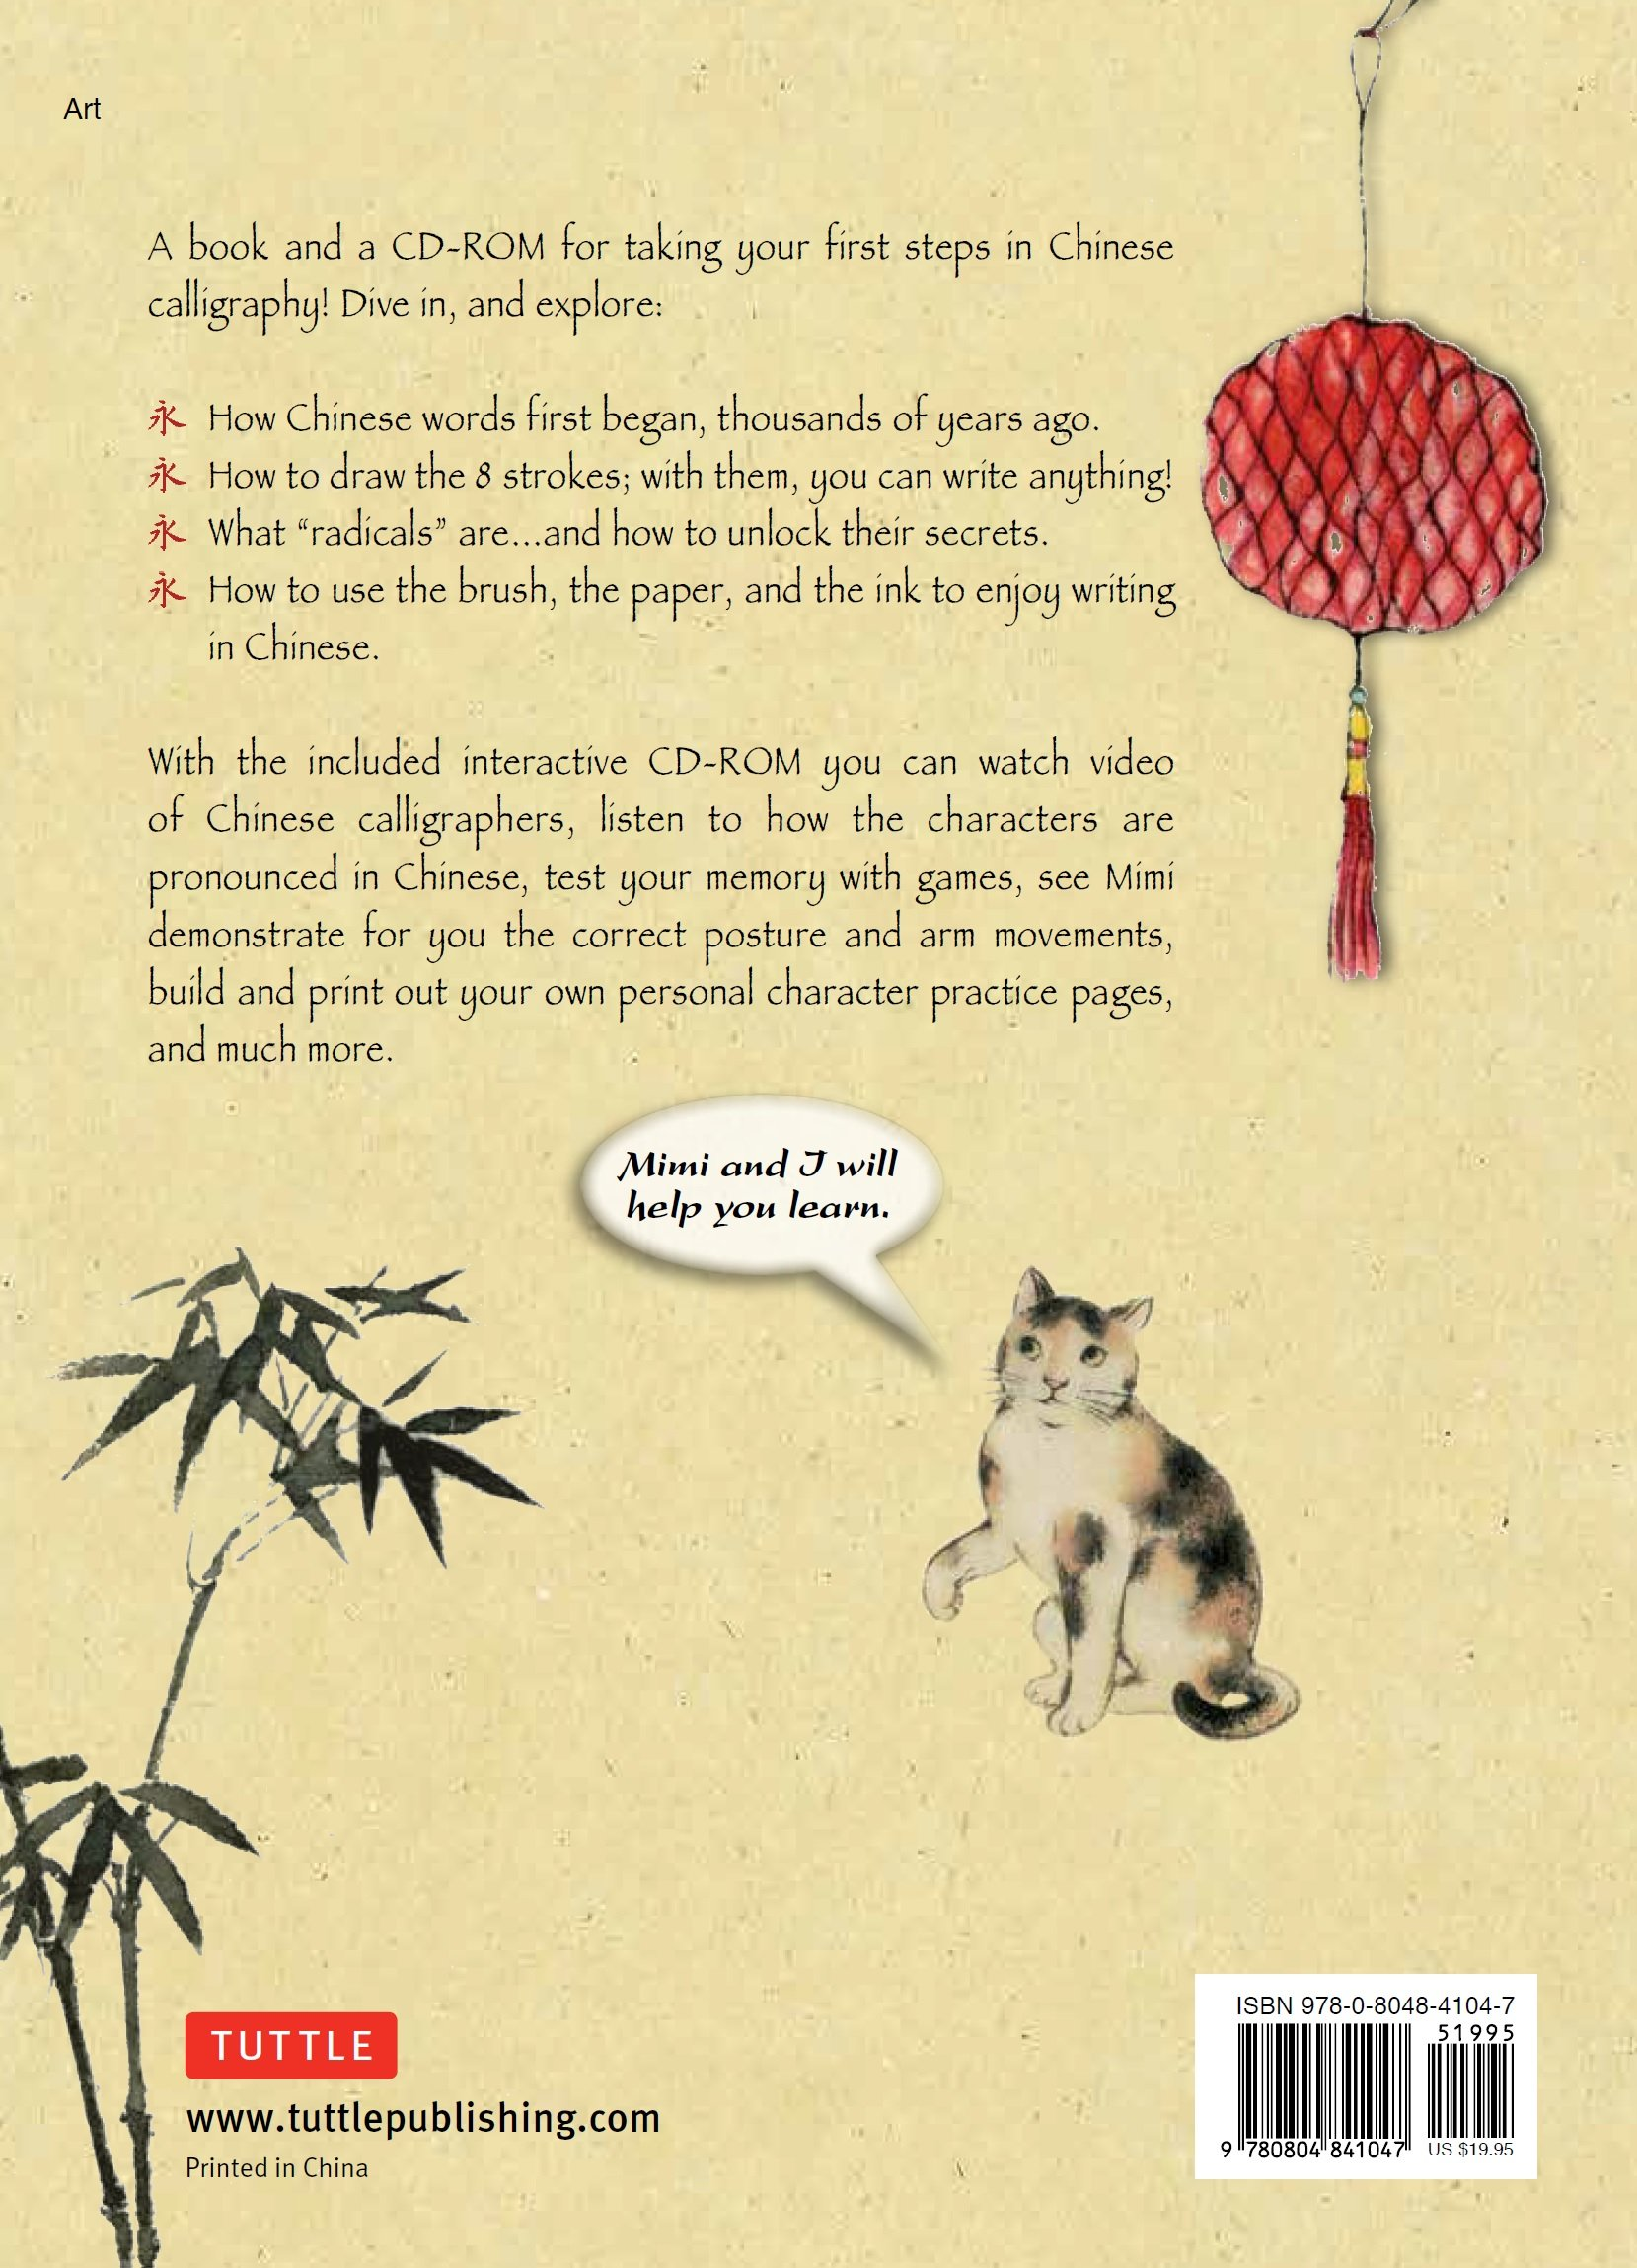 My First Book of Chinese Calligraphy: Amazon.co.uk: Guillaume Olive, Zihong  He: Books